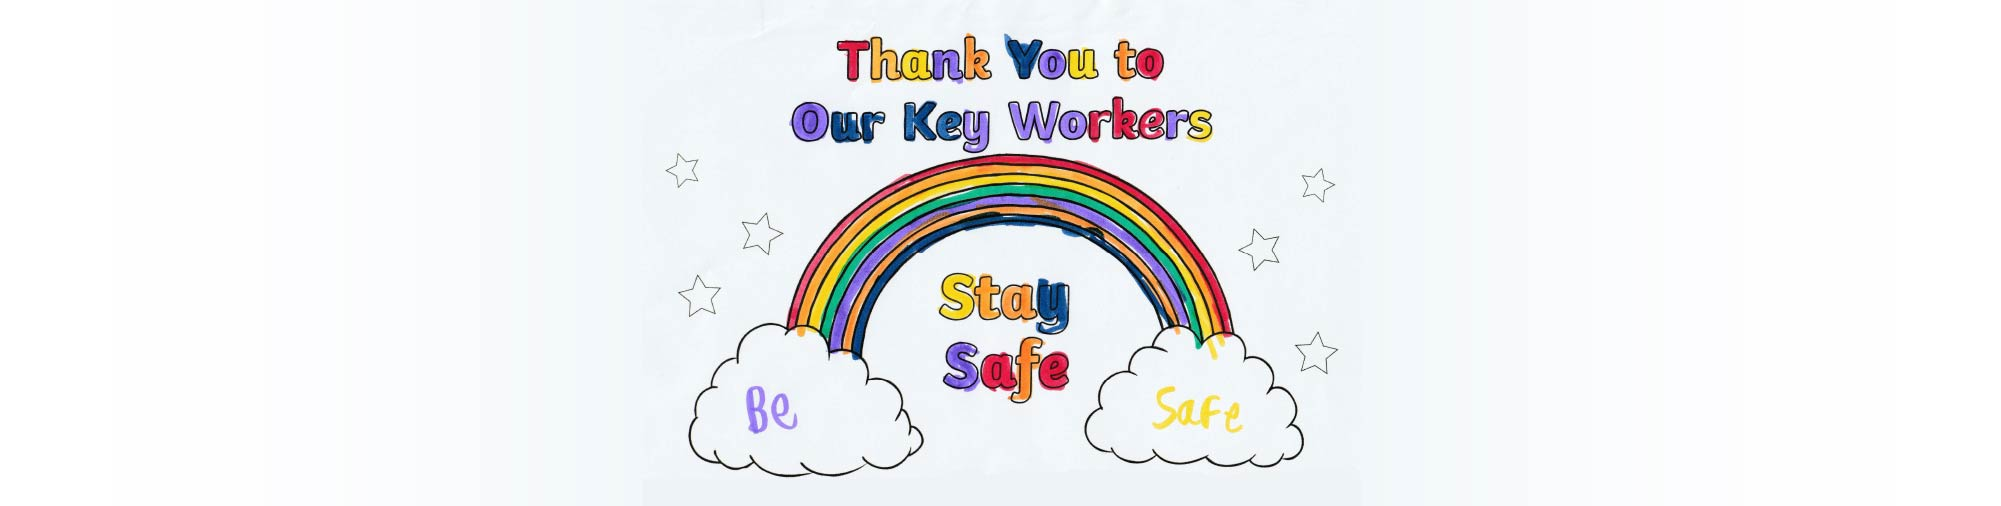 Thankyou to Our key Workers